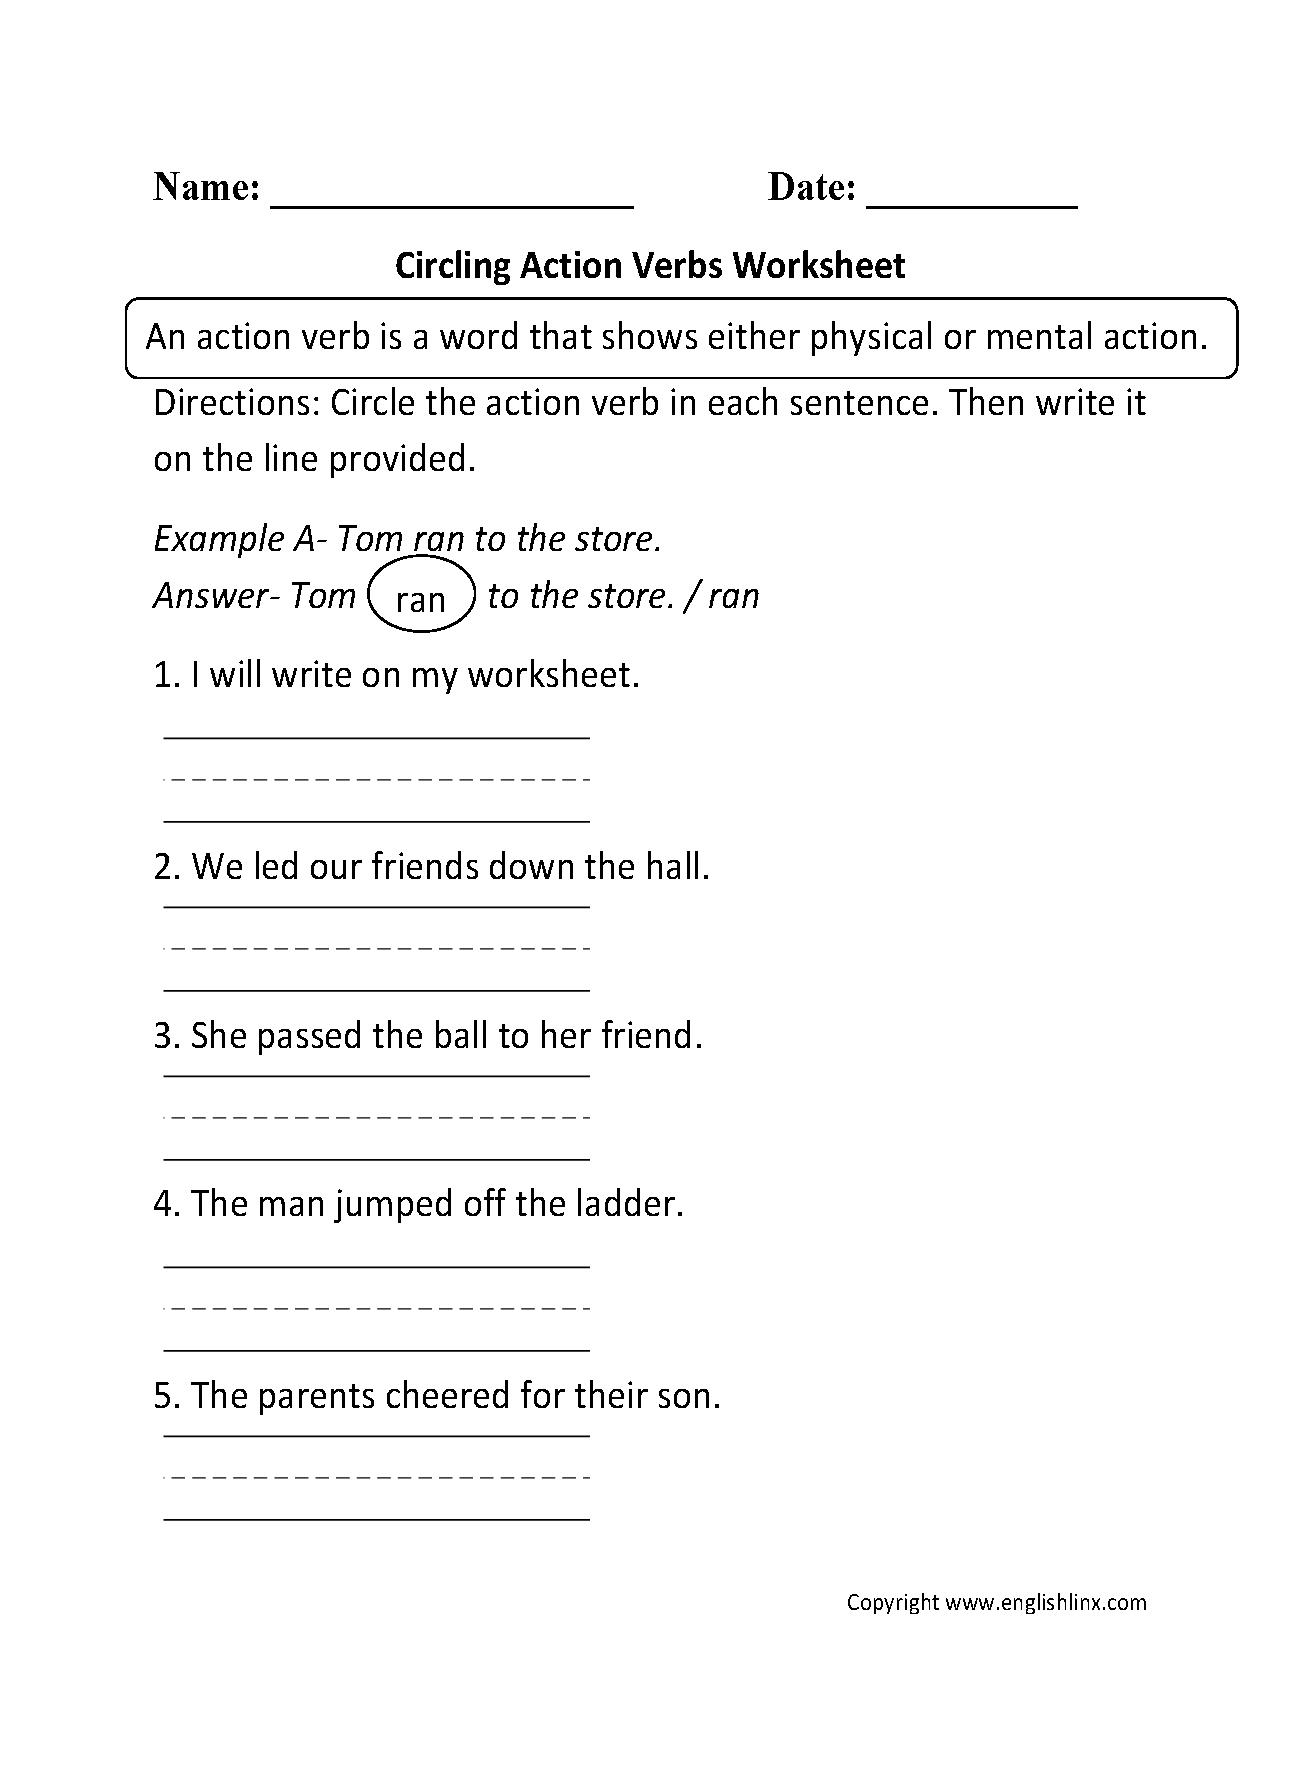 Circling Action Verbs Worksheet   Verb worksheets [ 1782 x 1301 Pixel ]